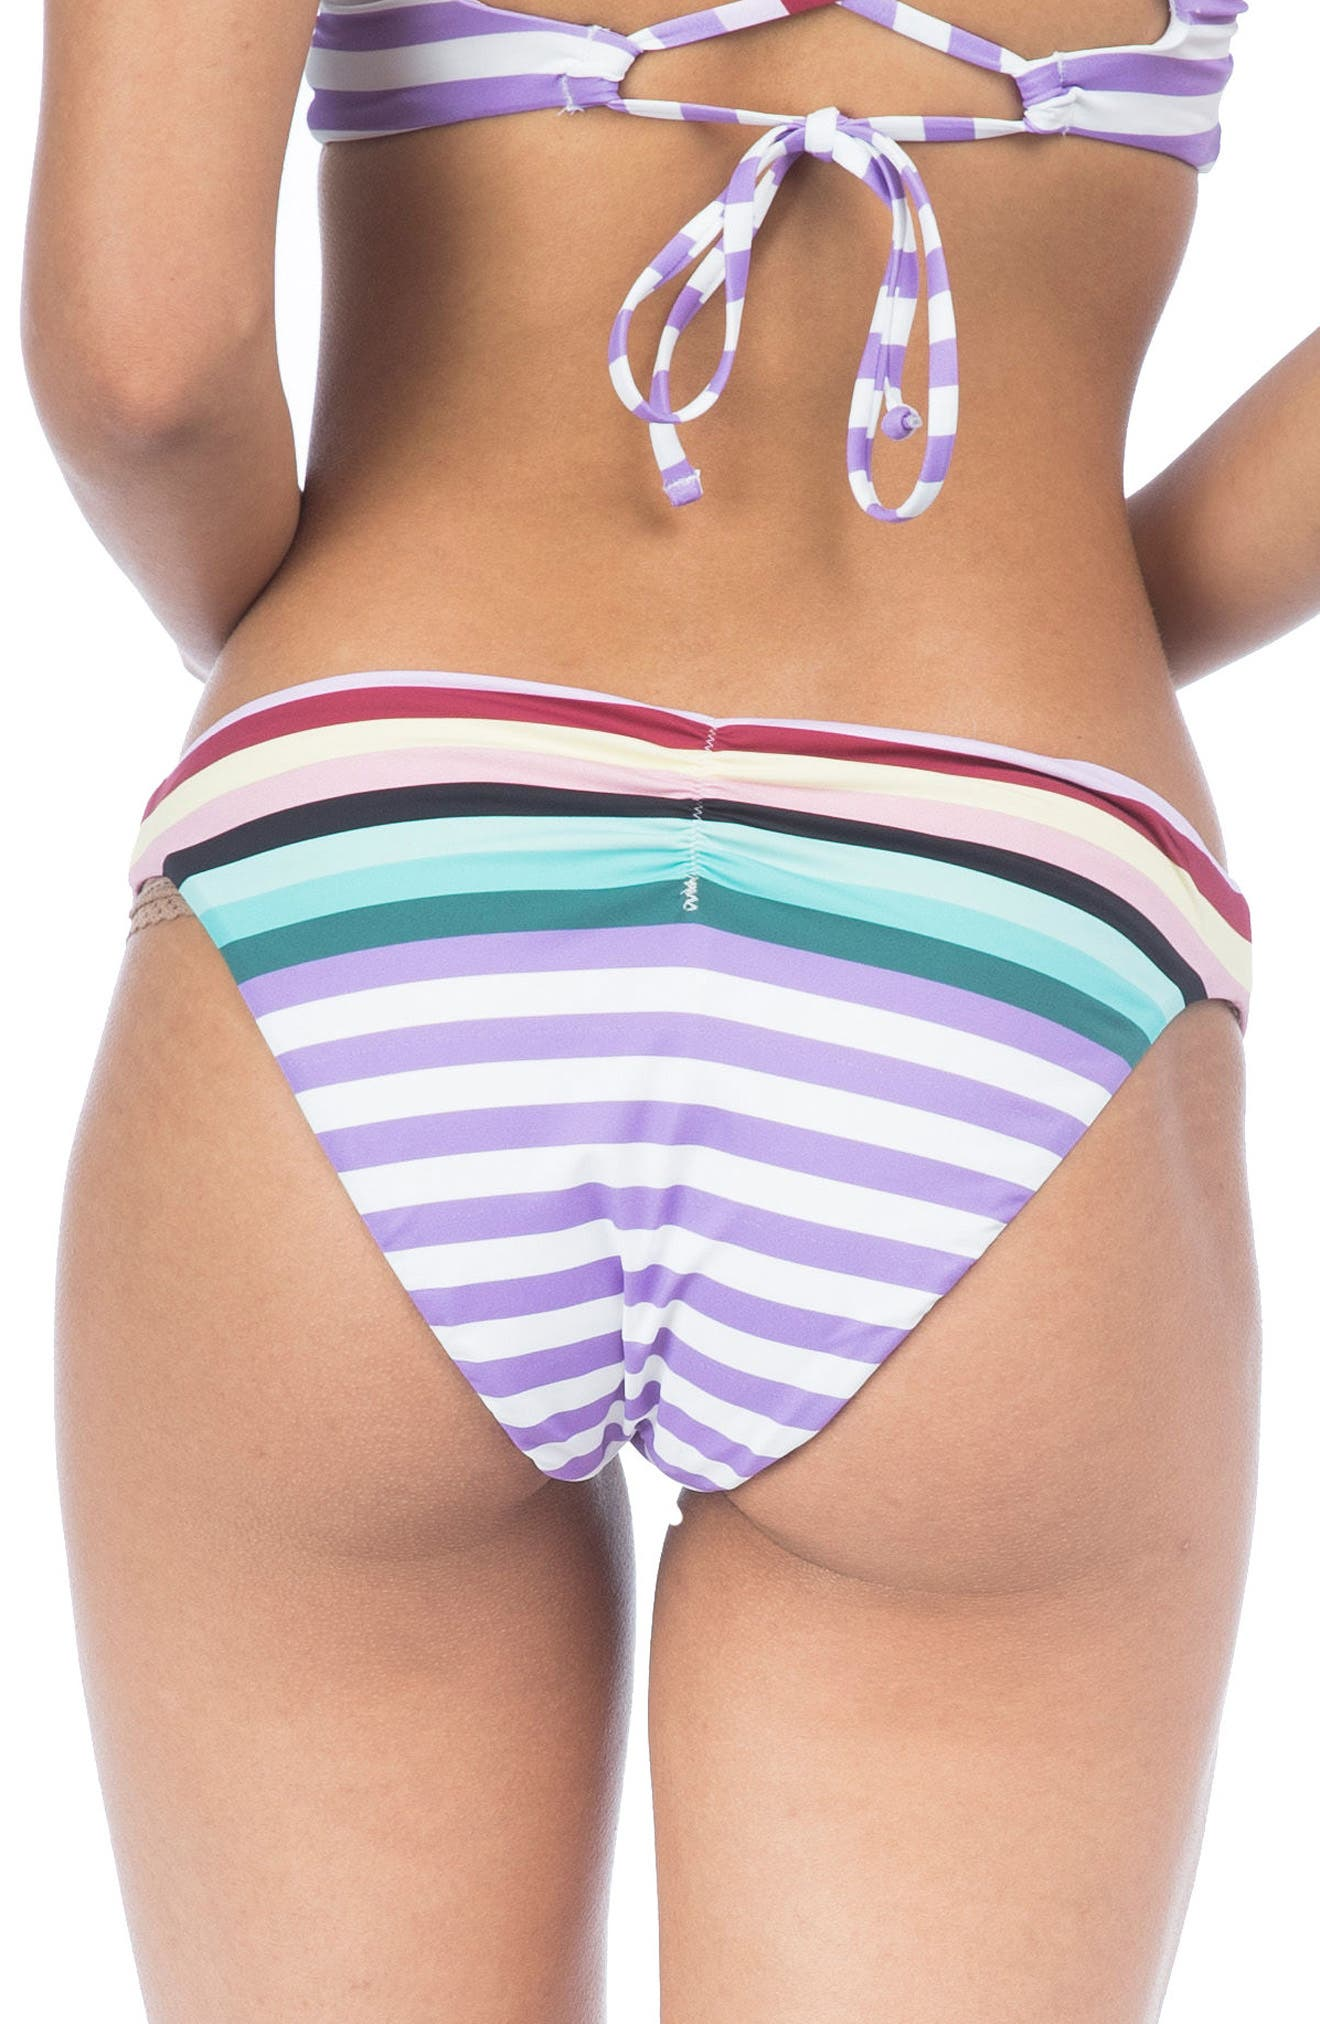 Stripeout Hipster Bikini Bottoms,                             Alternate thumbnail 2, color,                             500